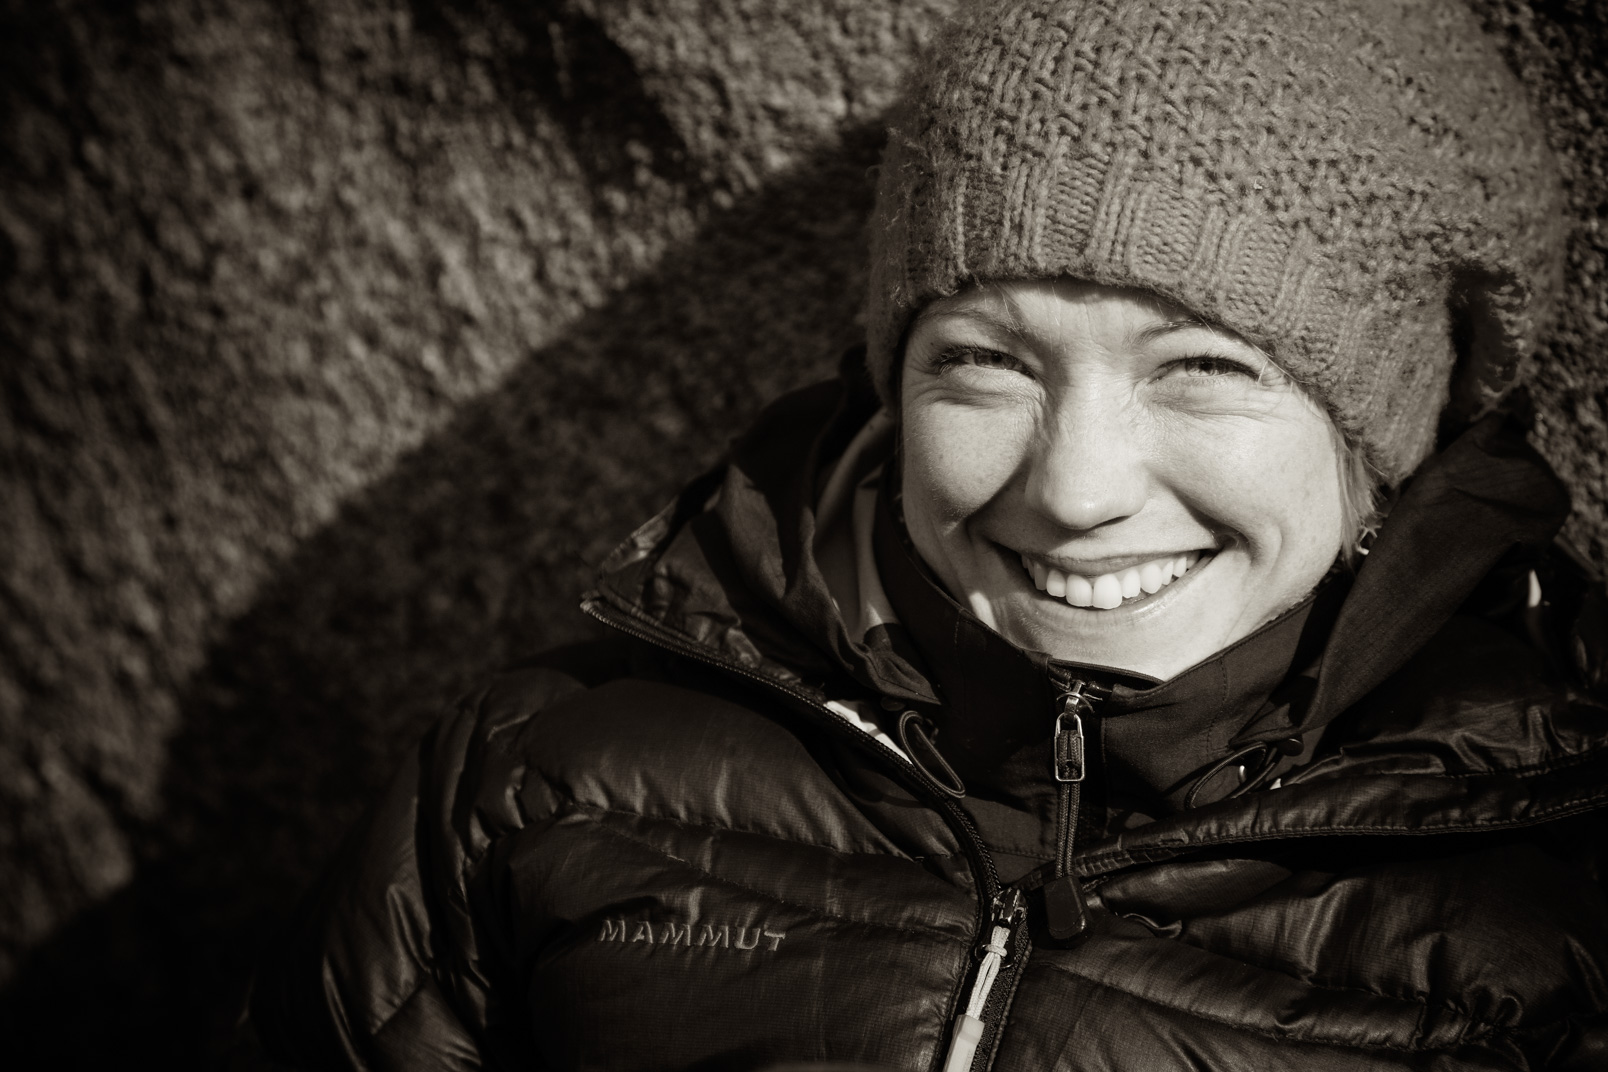 Karin Hedman | Stefan Kuerzi Adventure Photography